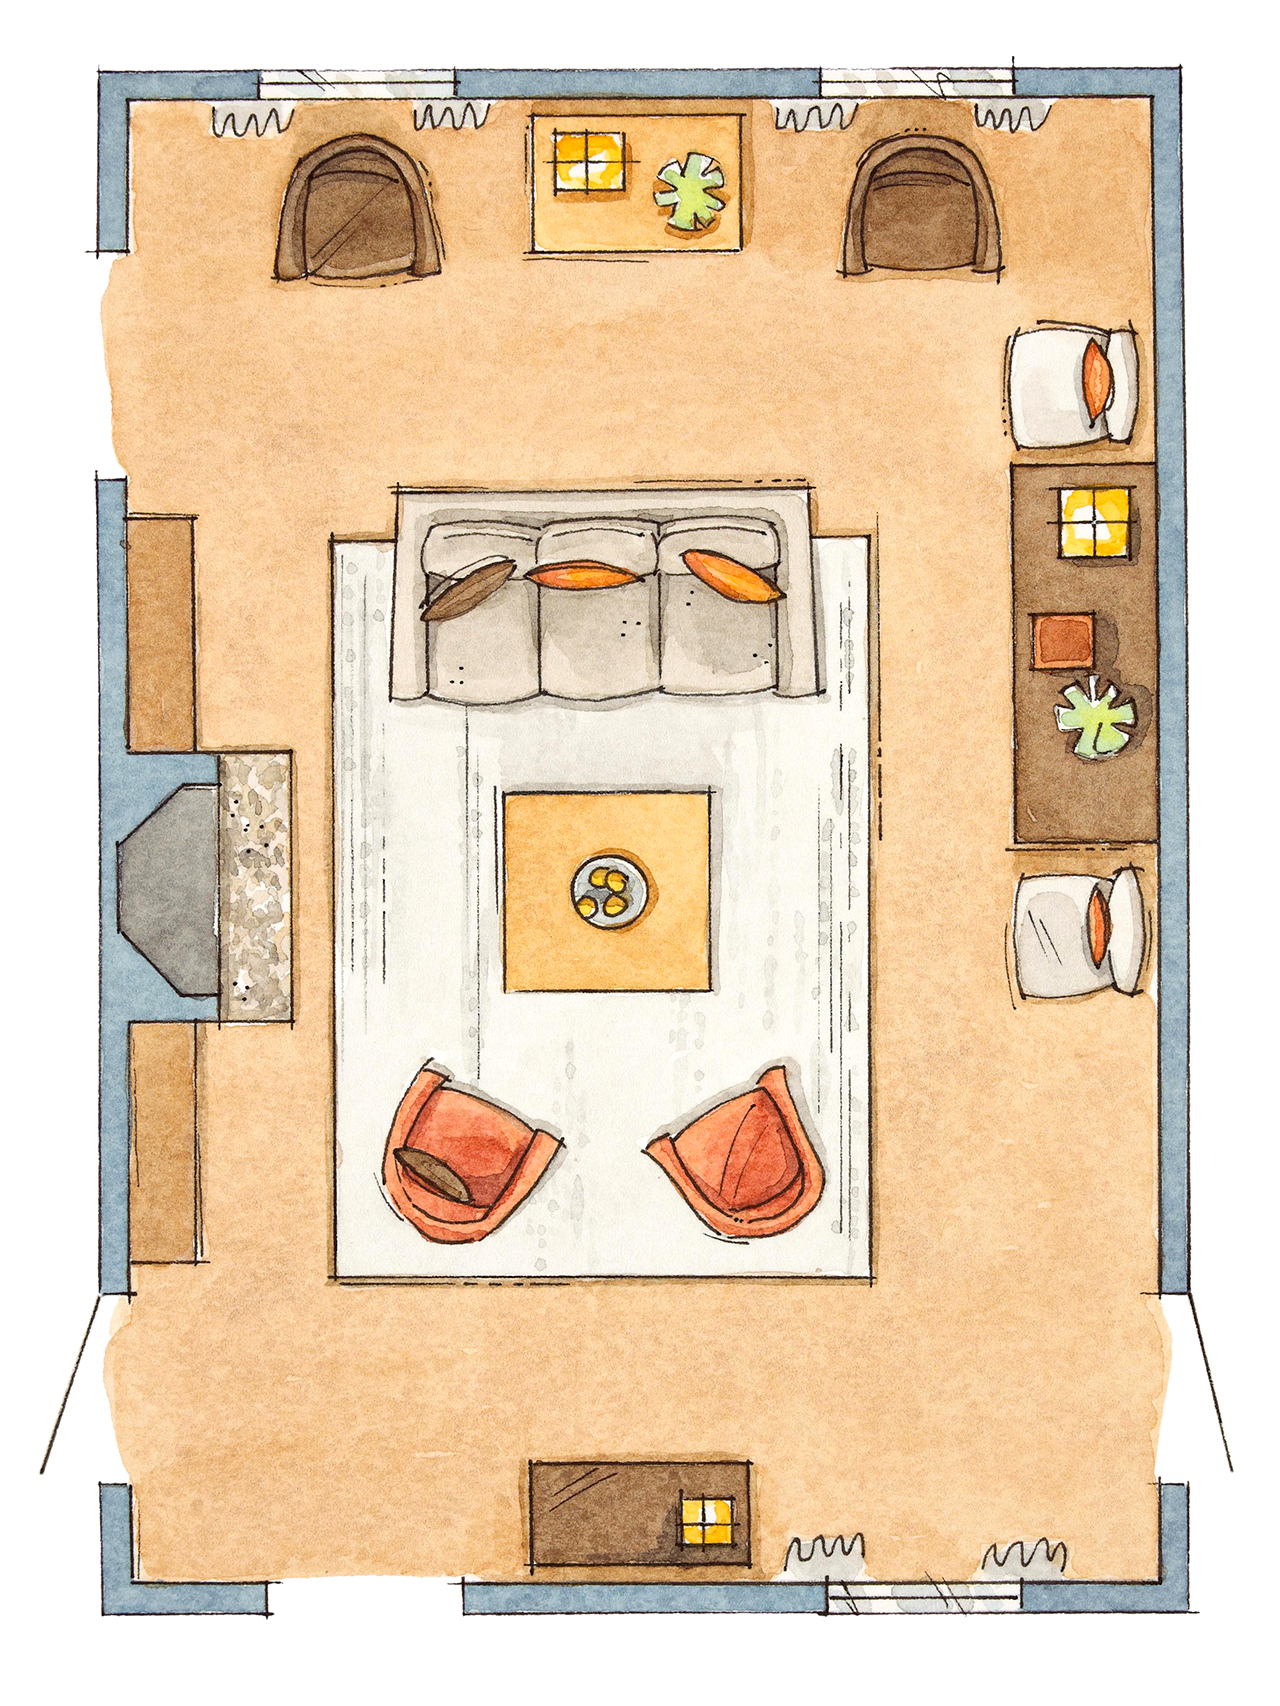 floor plan of rectangular room with floating furniture